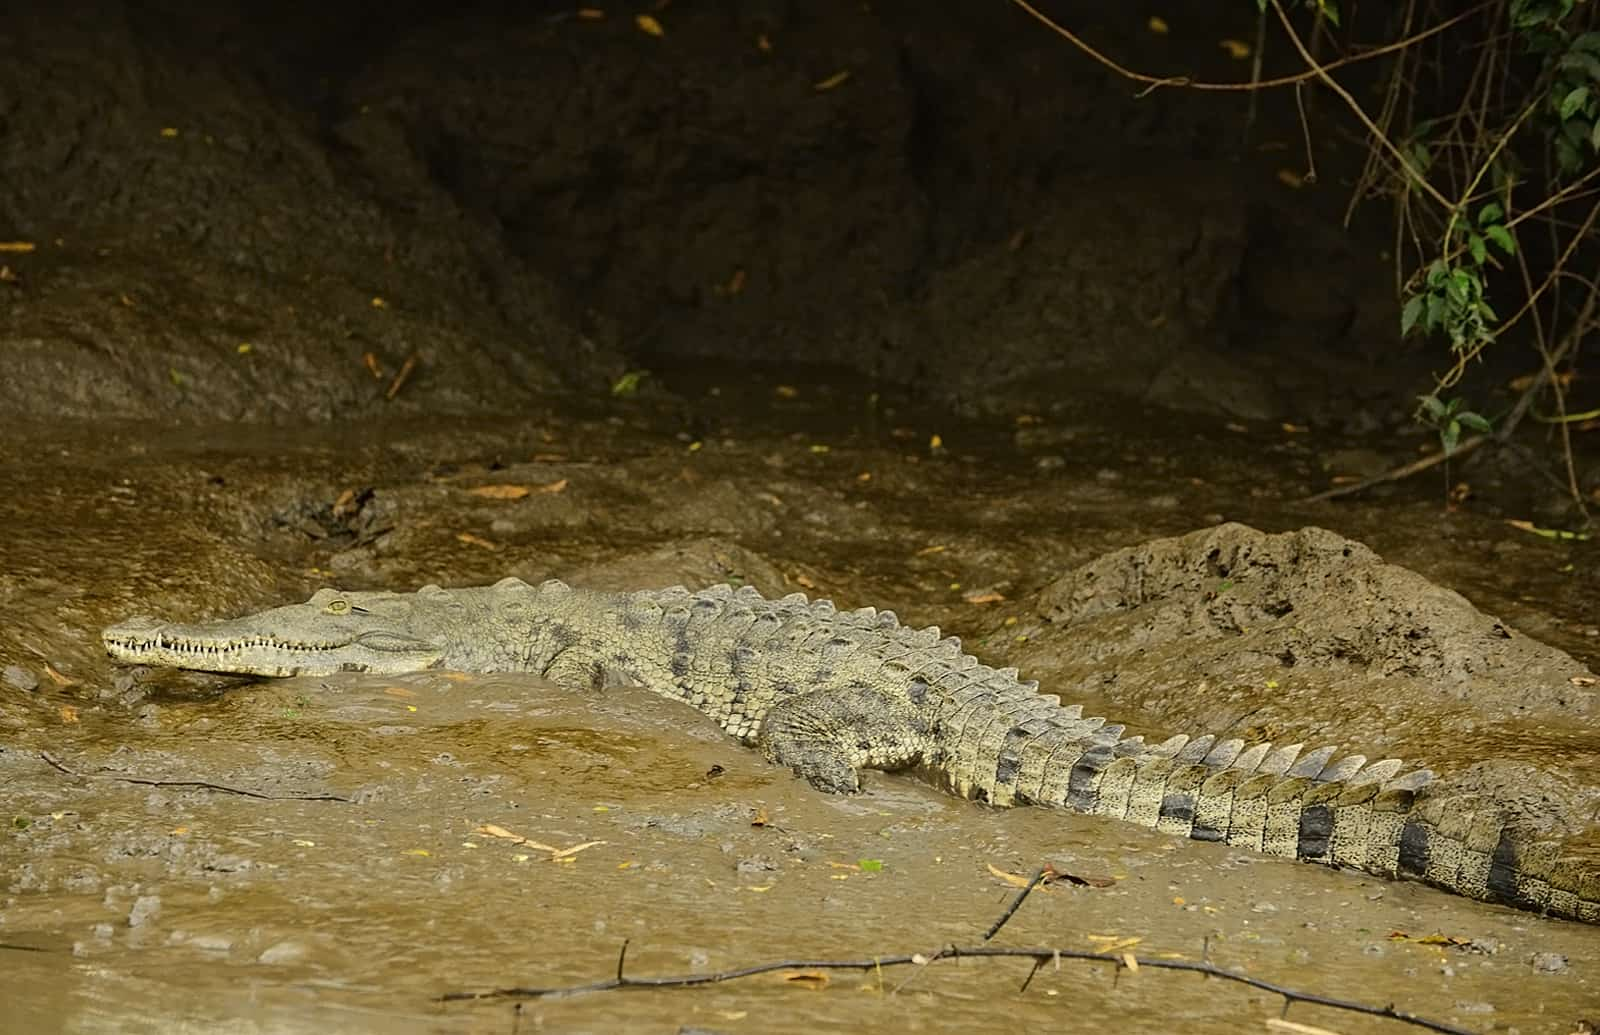 Costa ricas crocodile conundrum the tico times costa rica news a crocodile slithers into the water from the muddy bank of costa ricas tempisque river lindsay fendtthe tico times freerunsca Image collections